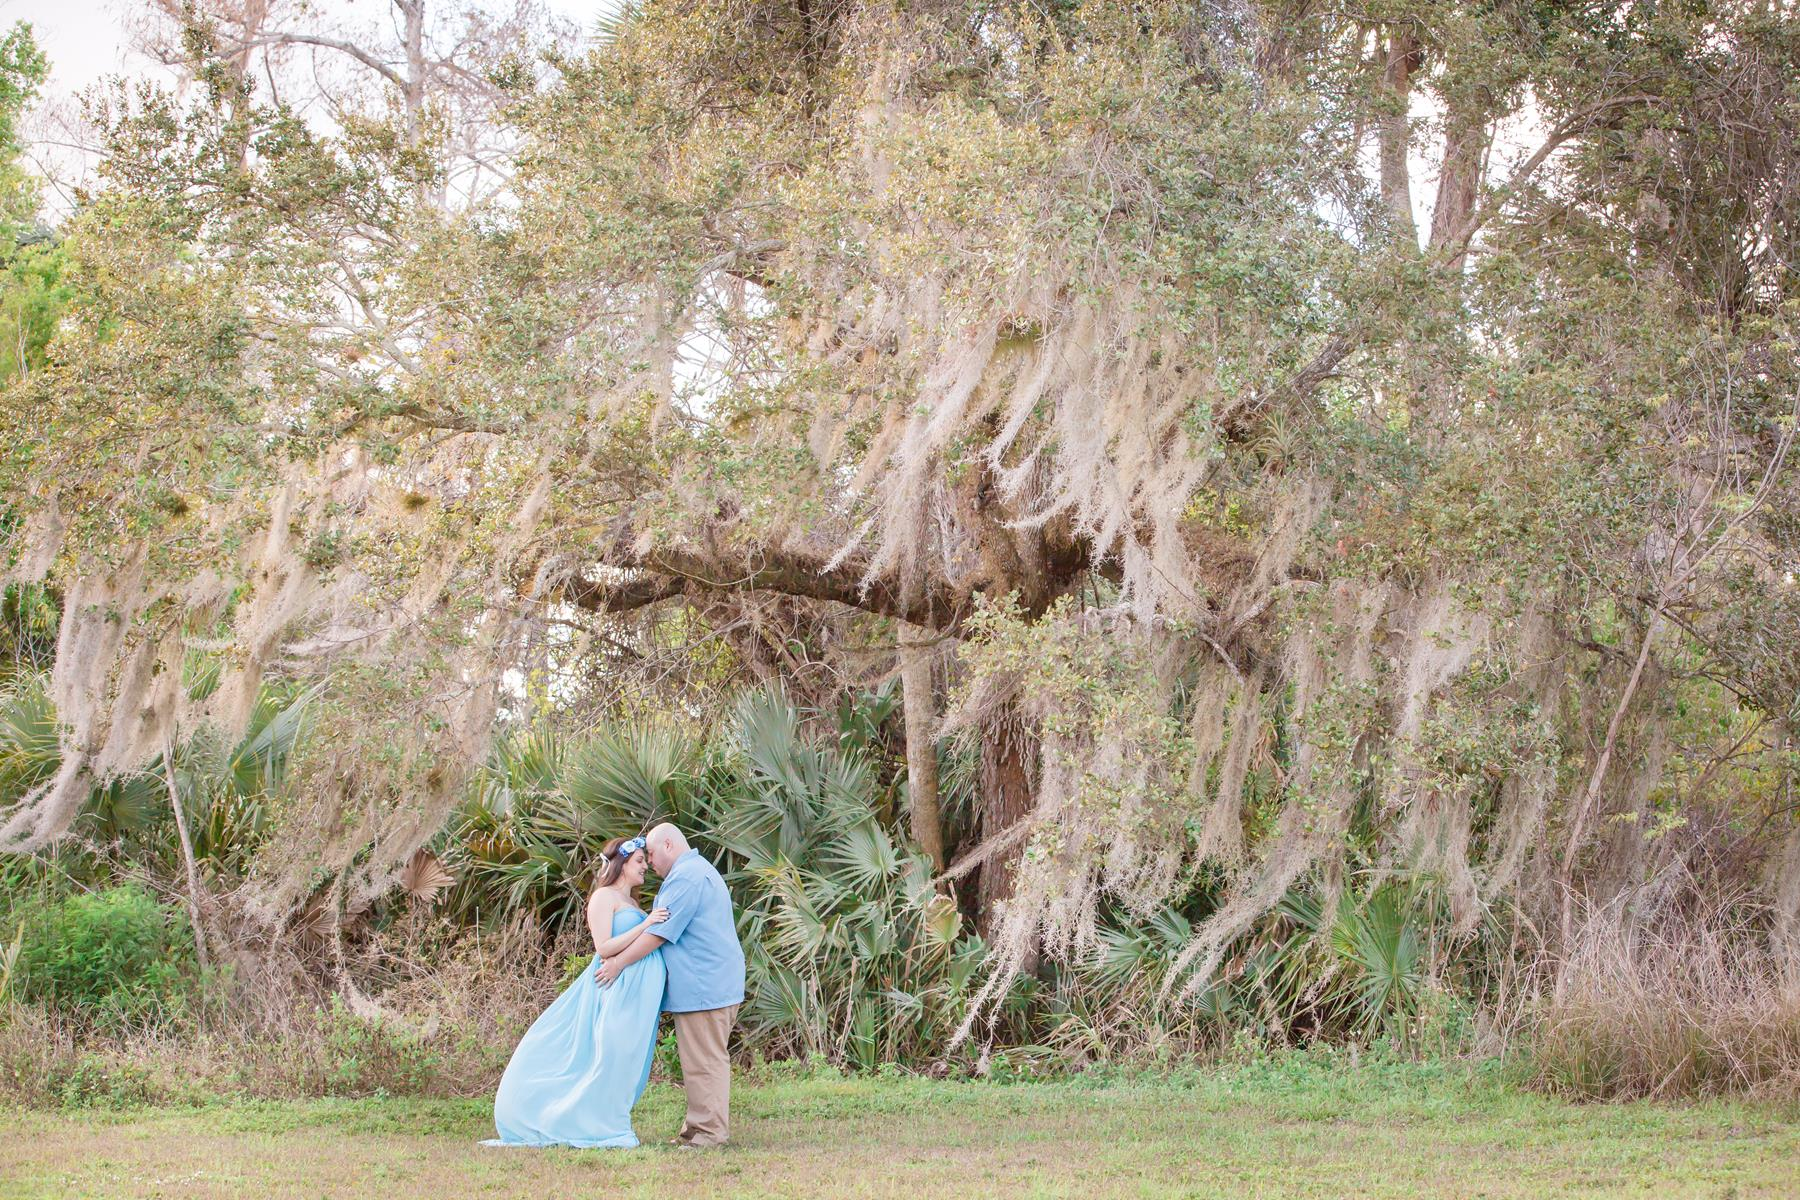 featured_franchesca-fread-photography-south-florida-and-destination-wedding-portrait-lifestyle-photographer19